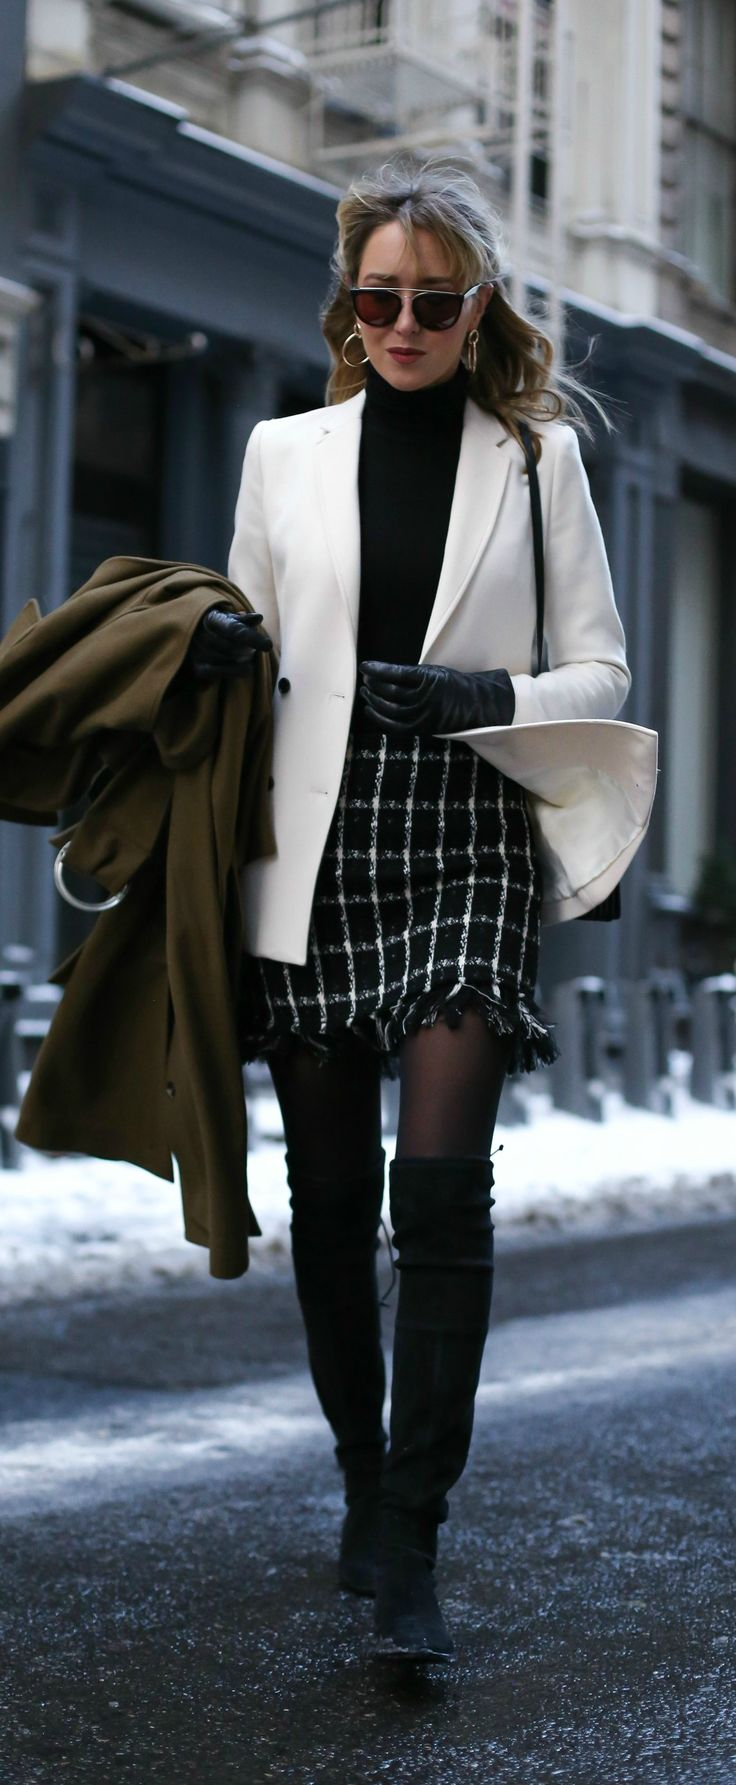 the best basic turtleneck, black and white check mini skirt with fringe detail, ivory double-breasted blazer with black buttons, over-the-knee suede flat boots, long olive green wool maxi coat // classic office style